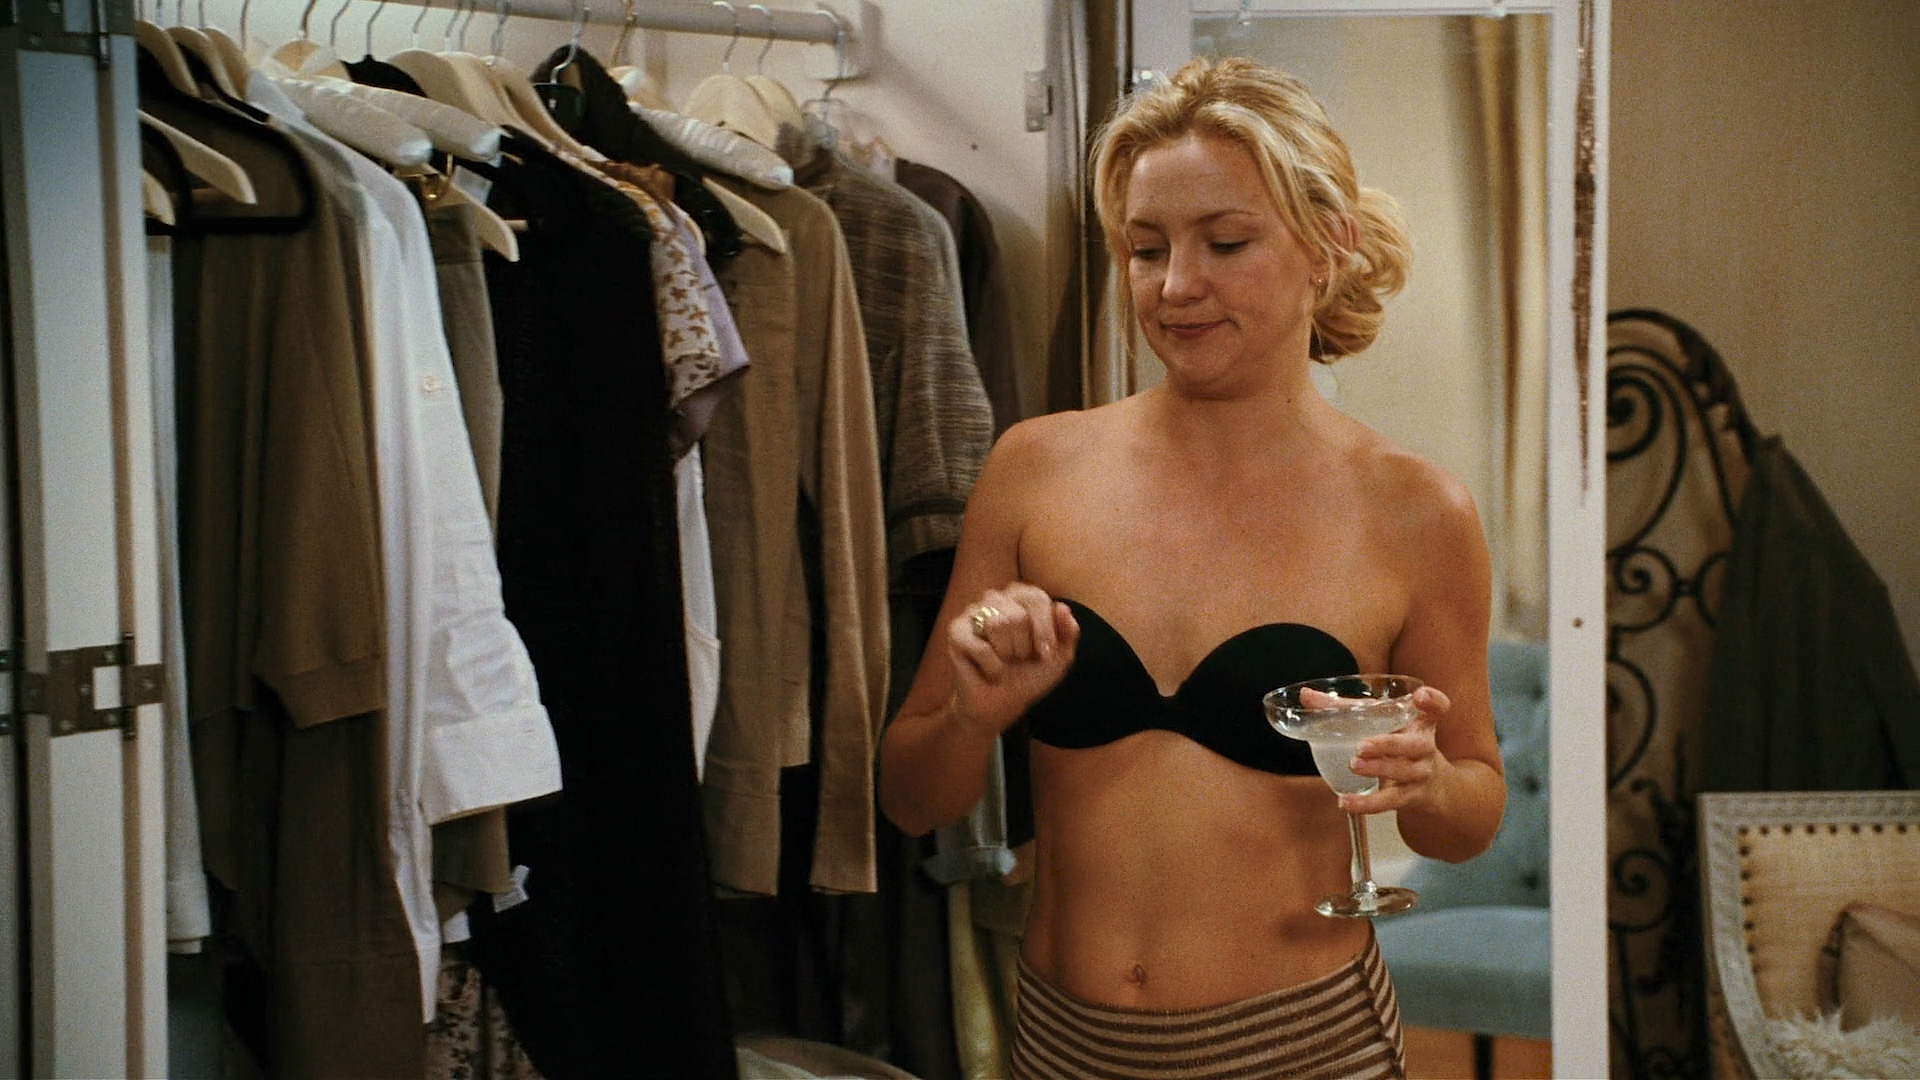 Kate Hudson hot Jacqui Holland nude Lizzy Caplan and Diora Baird hot - My Best Friend's Girl (2008) HD 1080p (12)